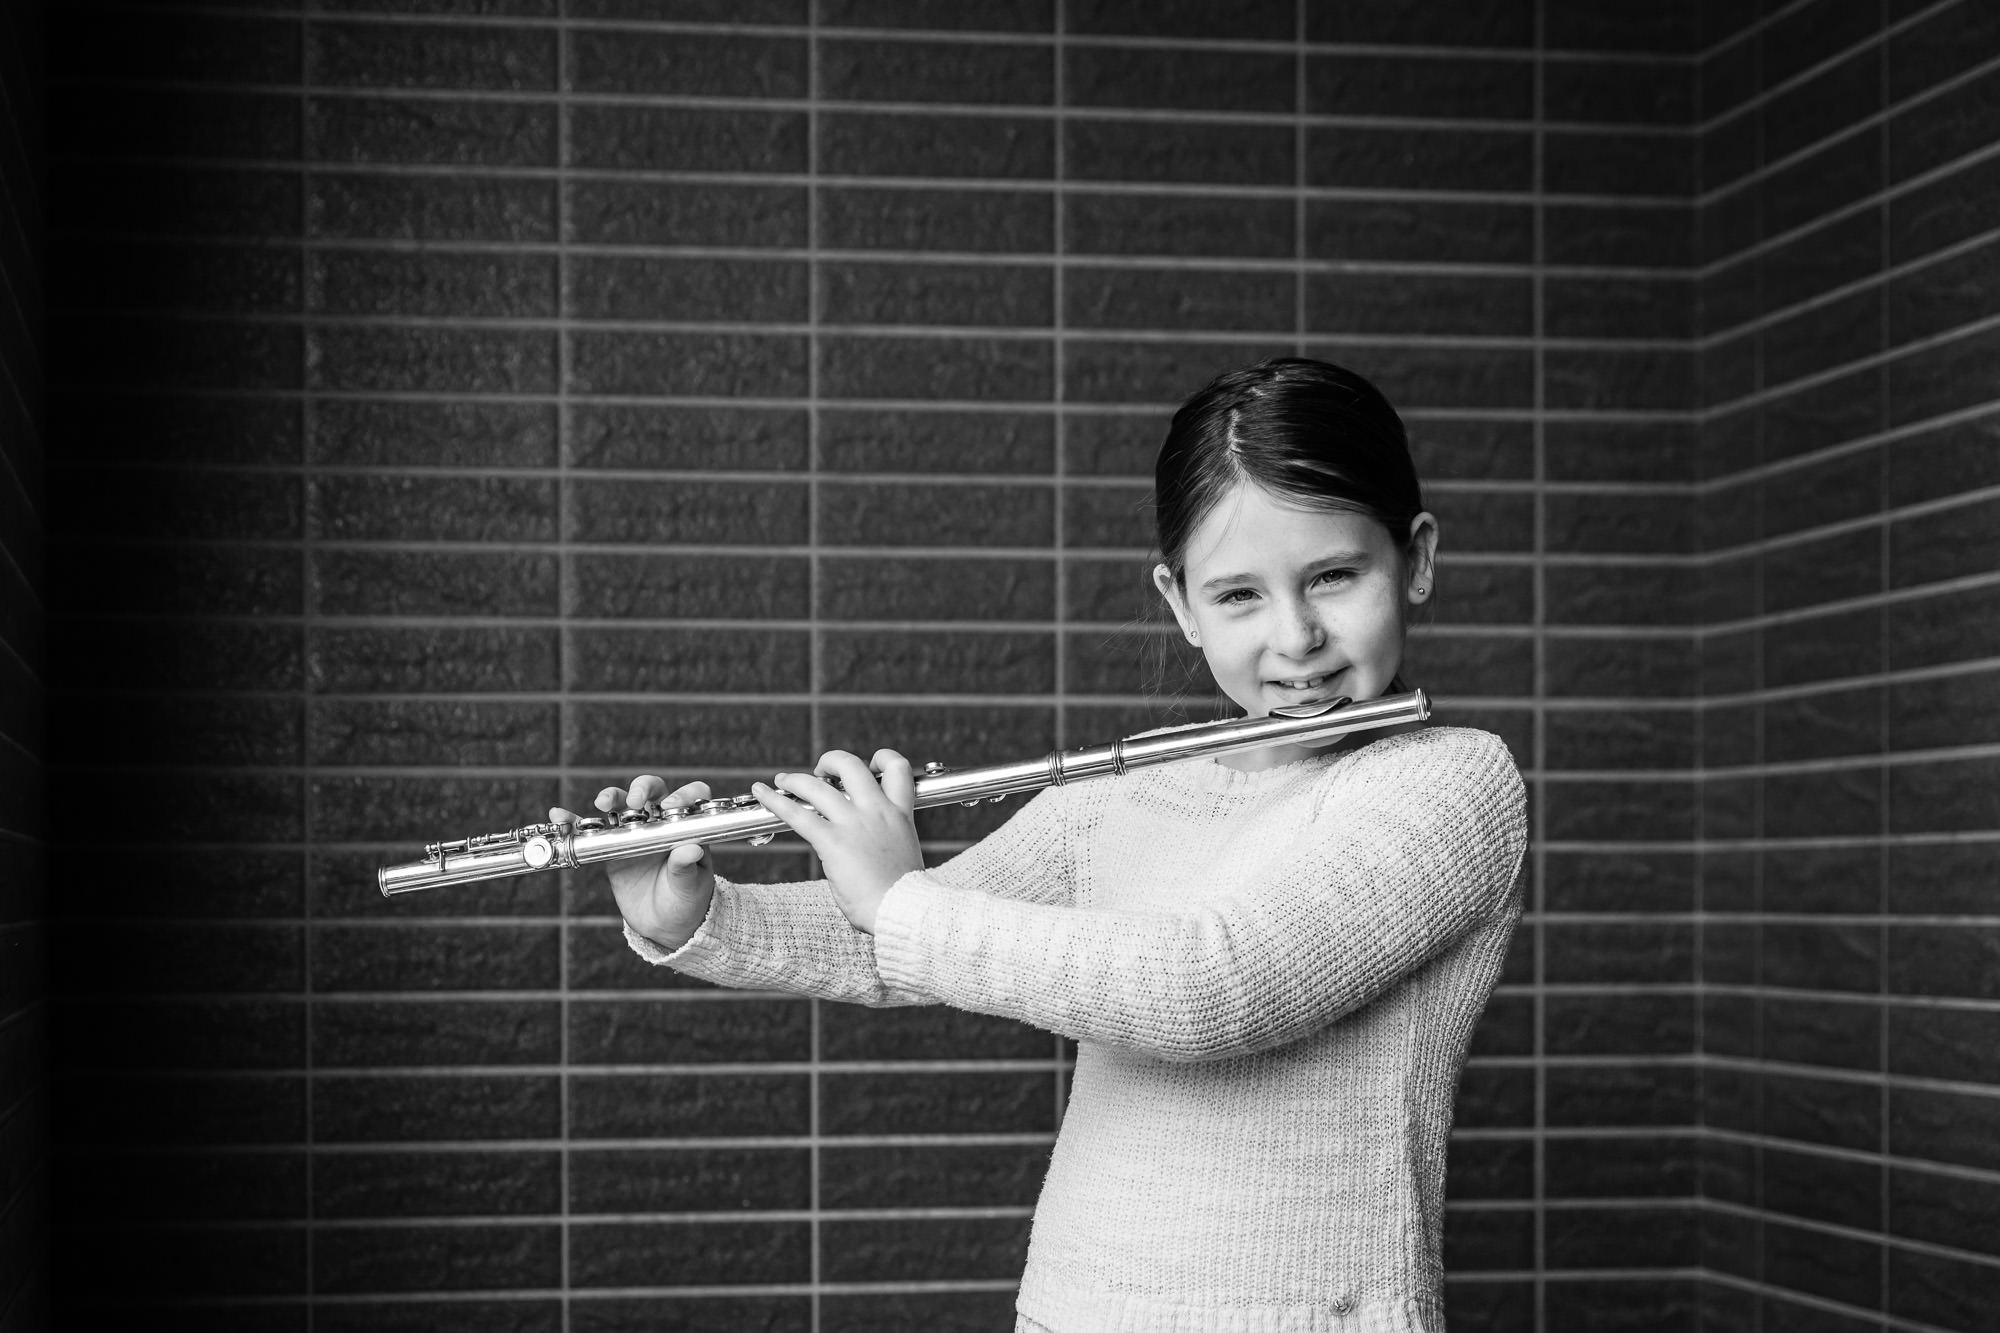 monochrome image of girl smiling holding flute by rebecca hunnicutt farren, portland oregons premiere childrens photographer